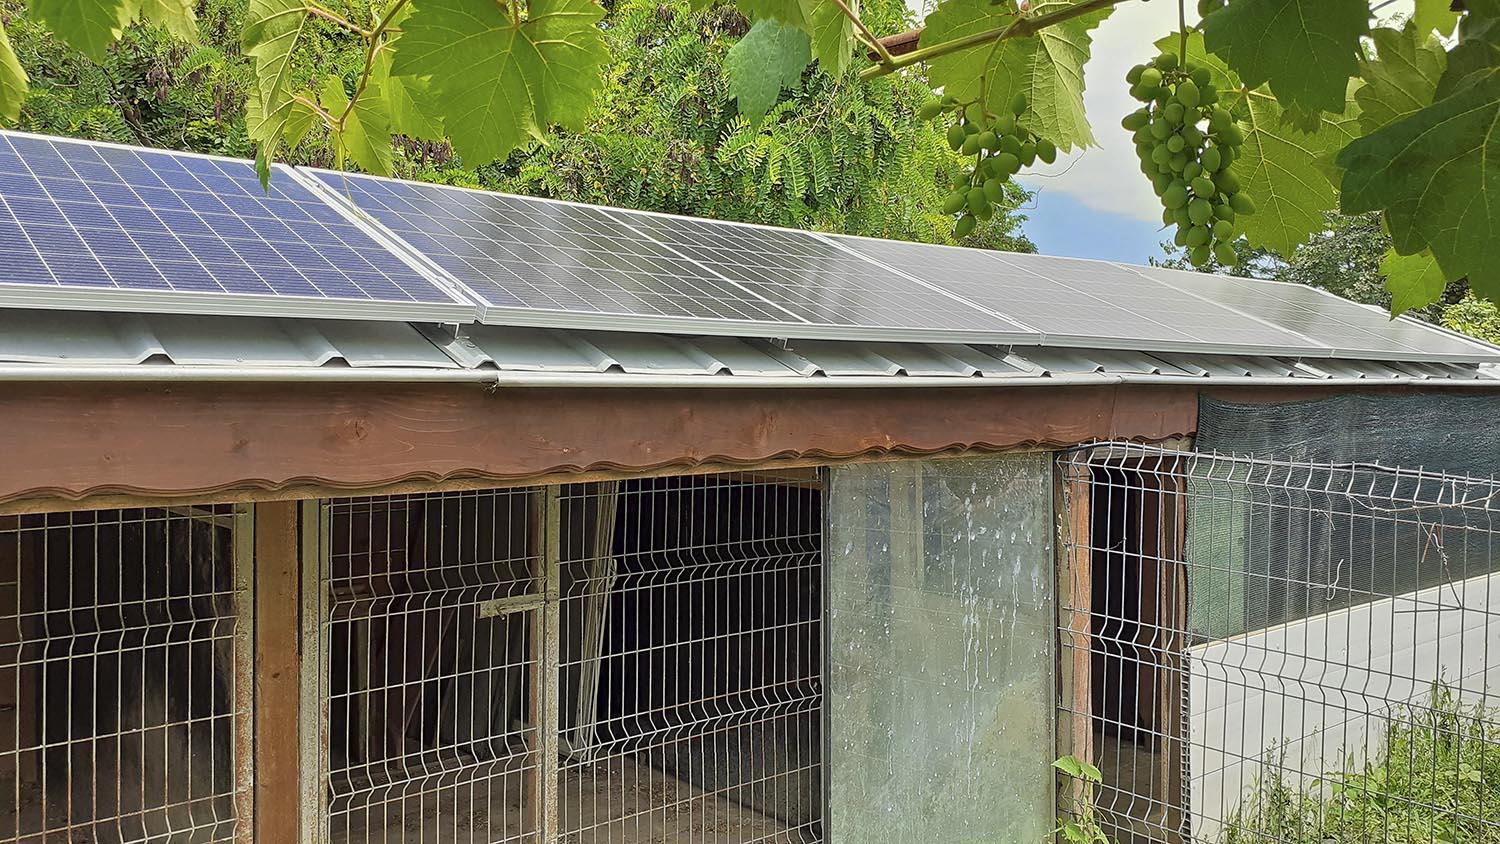 Photovoltaic modules for the kennel